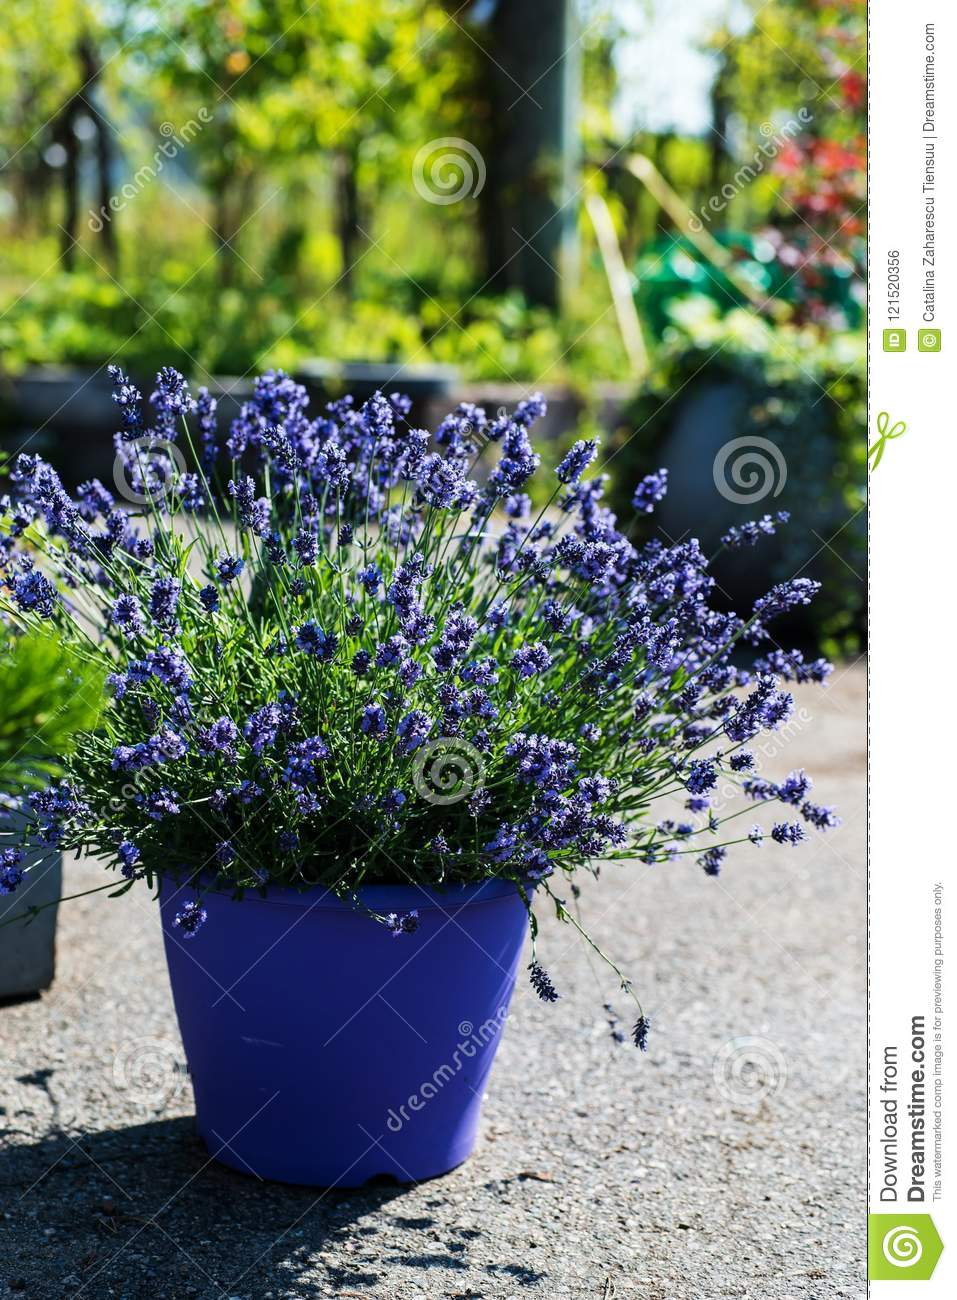 French lavender plant